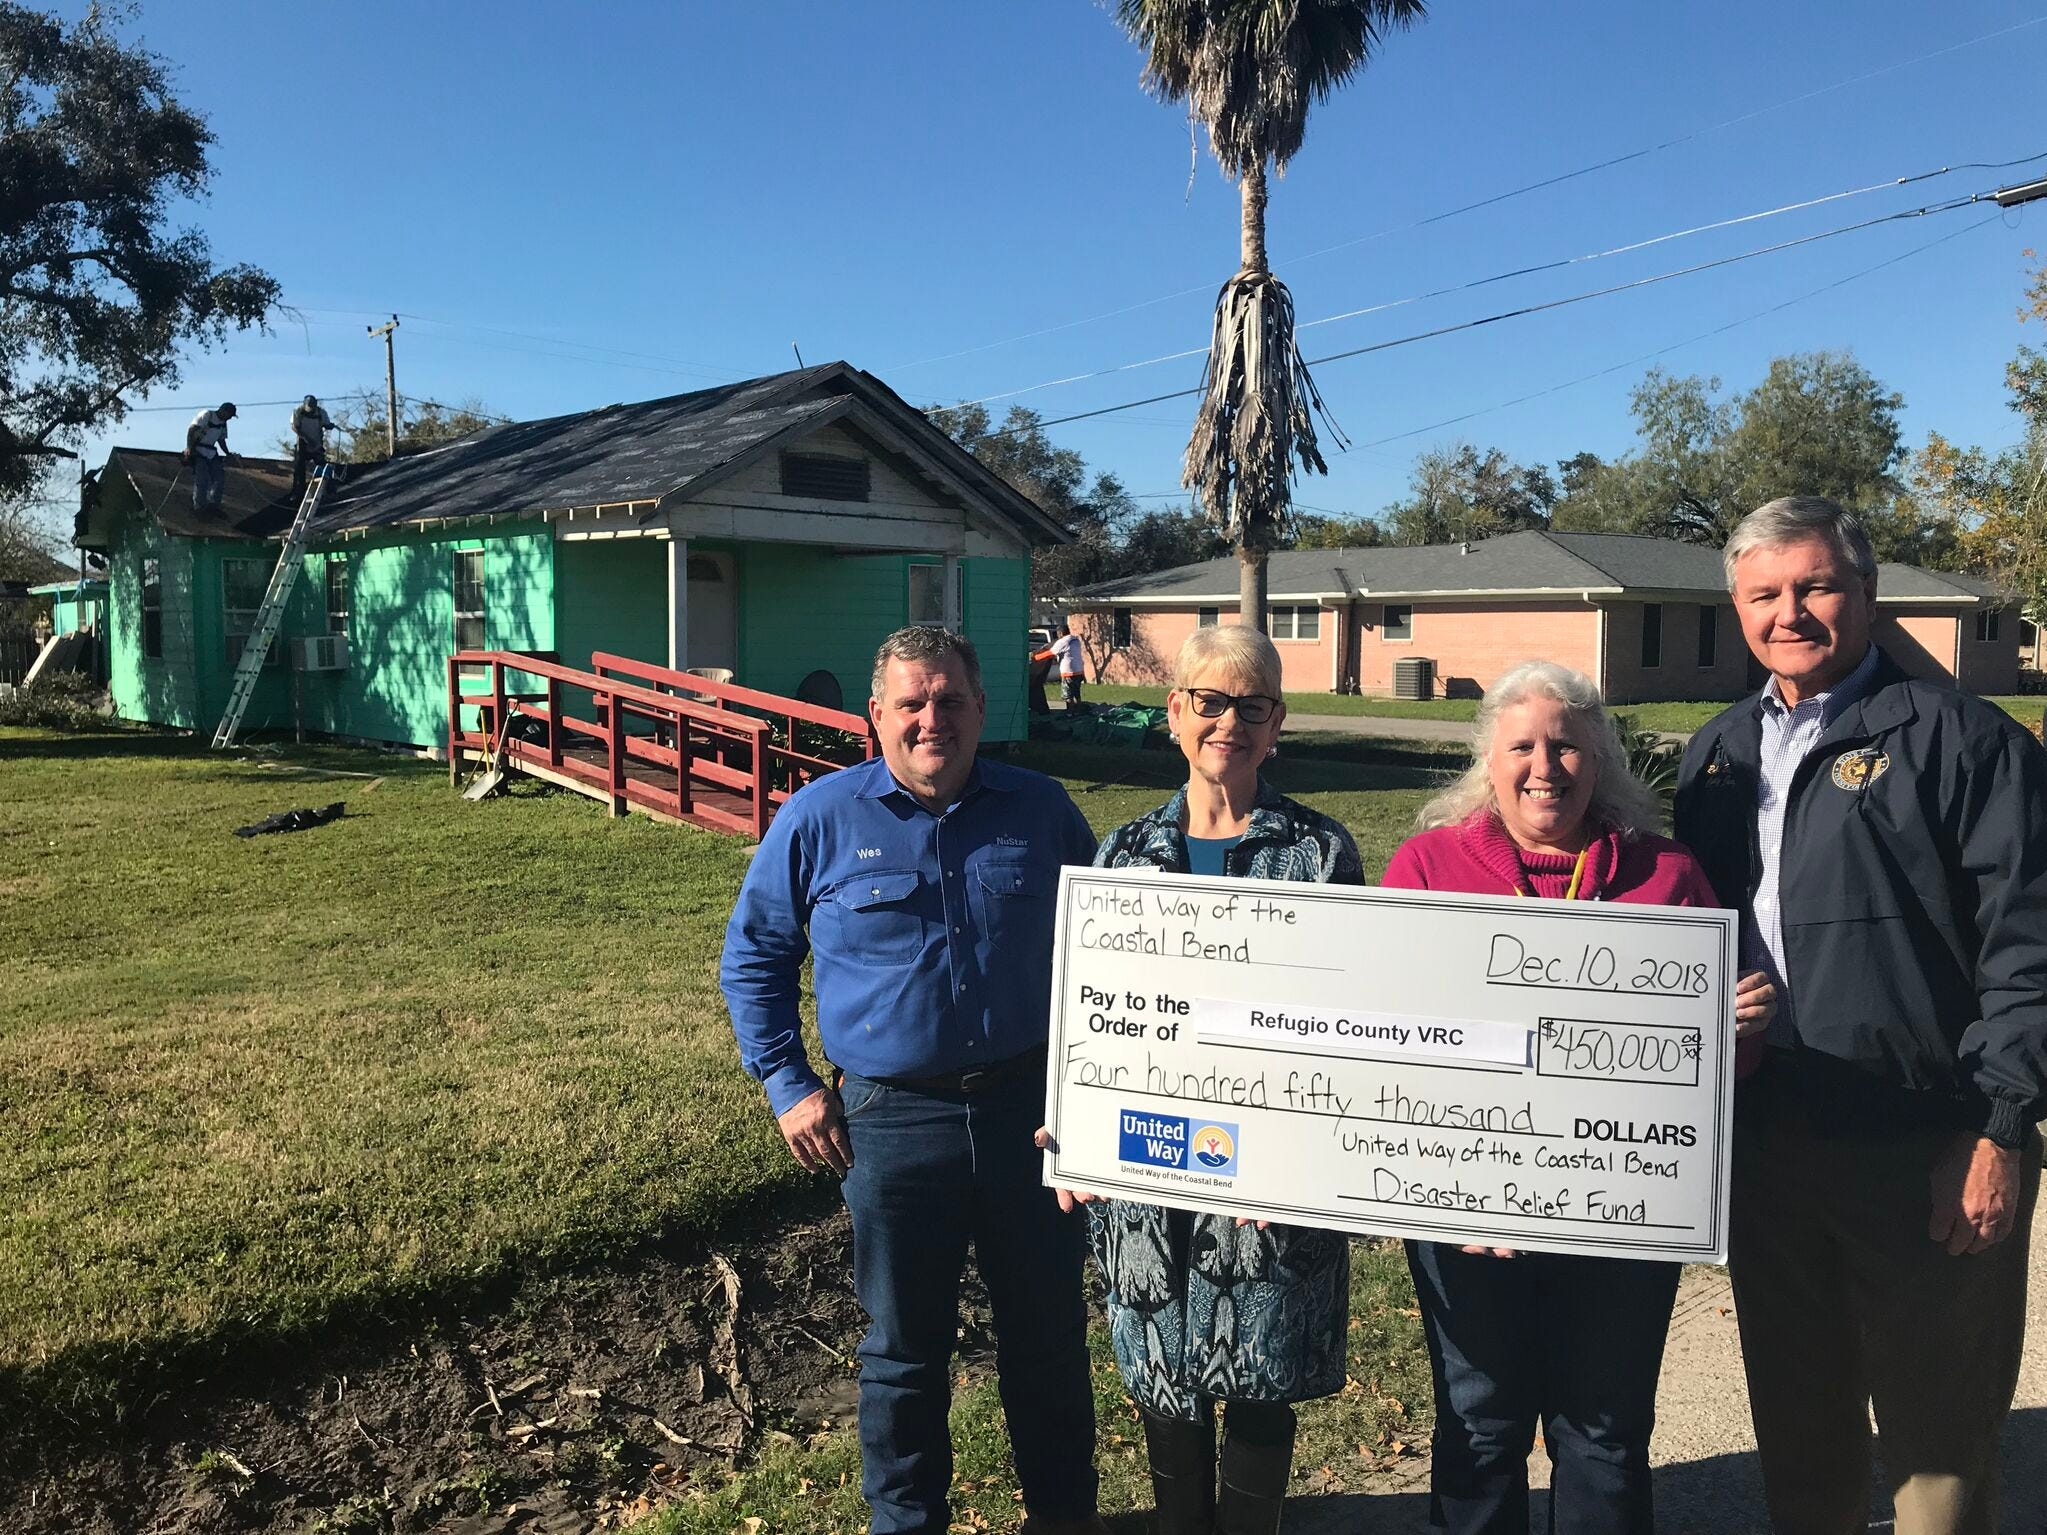 Catrina Wilson, longtime CEO of United Way of the Coastal Bend, will retire in April. Wilson joined the United Way in 2006 and made changes that focused on making sure donor dollars were being used in the best way possible.